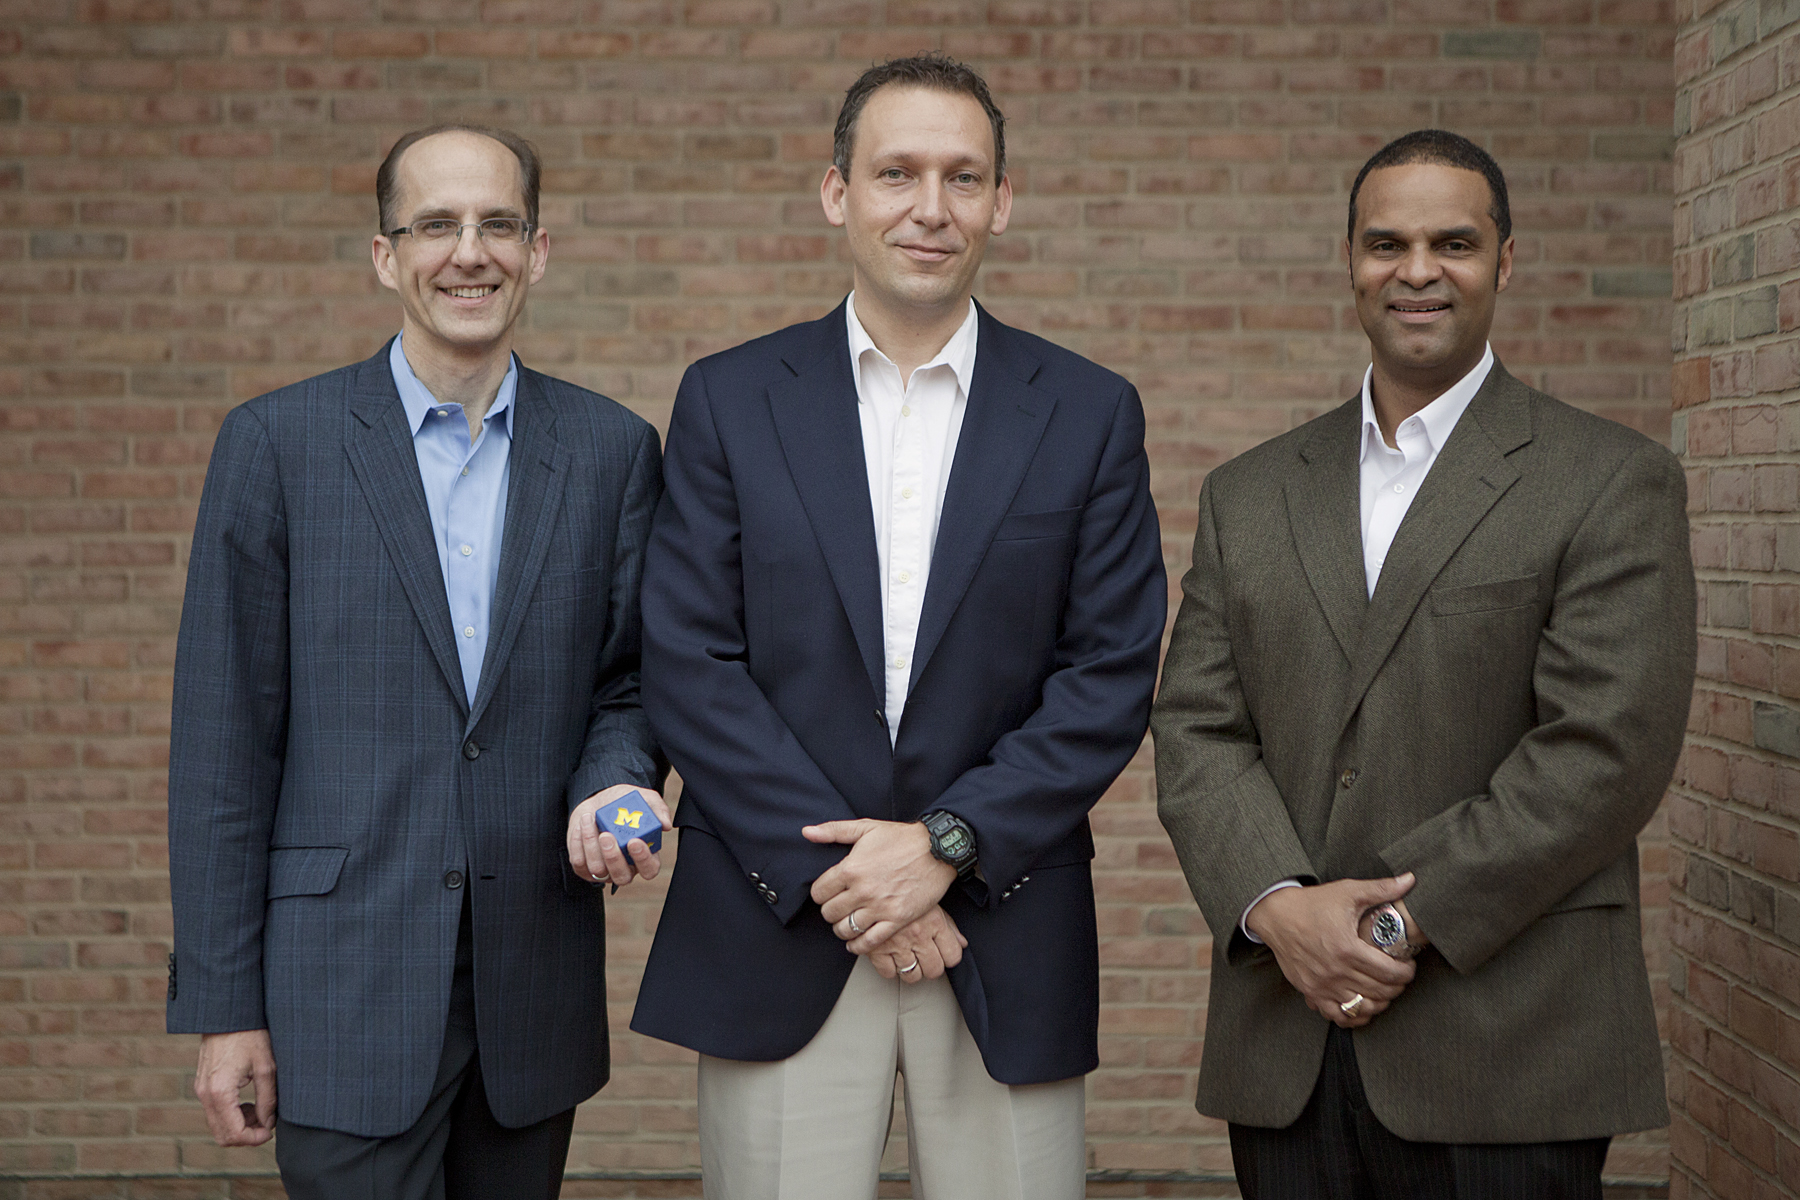 MCubed, the University of Michigan's new real-time research funding initiative, was spearheaded by three engineering faculty members: Mark Burns, chair of chemical engineering; Thomas Zurbuchen, associate dean for entrepreneurial programs, and Alec Gallimore, associate dean for research and graduate education. Image credit: Laura Rudich, U-M College of Engineering